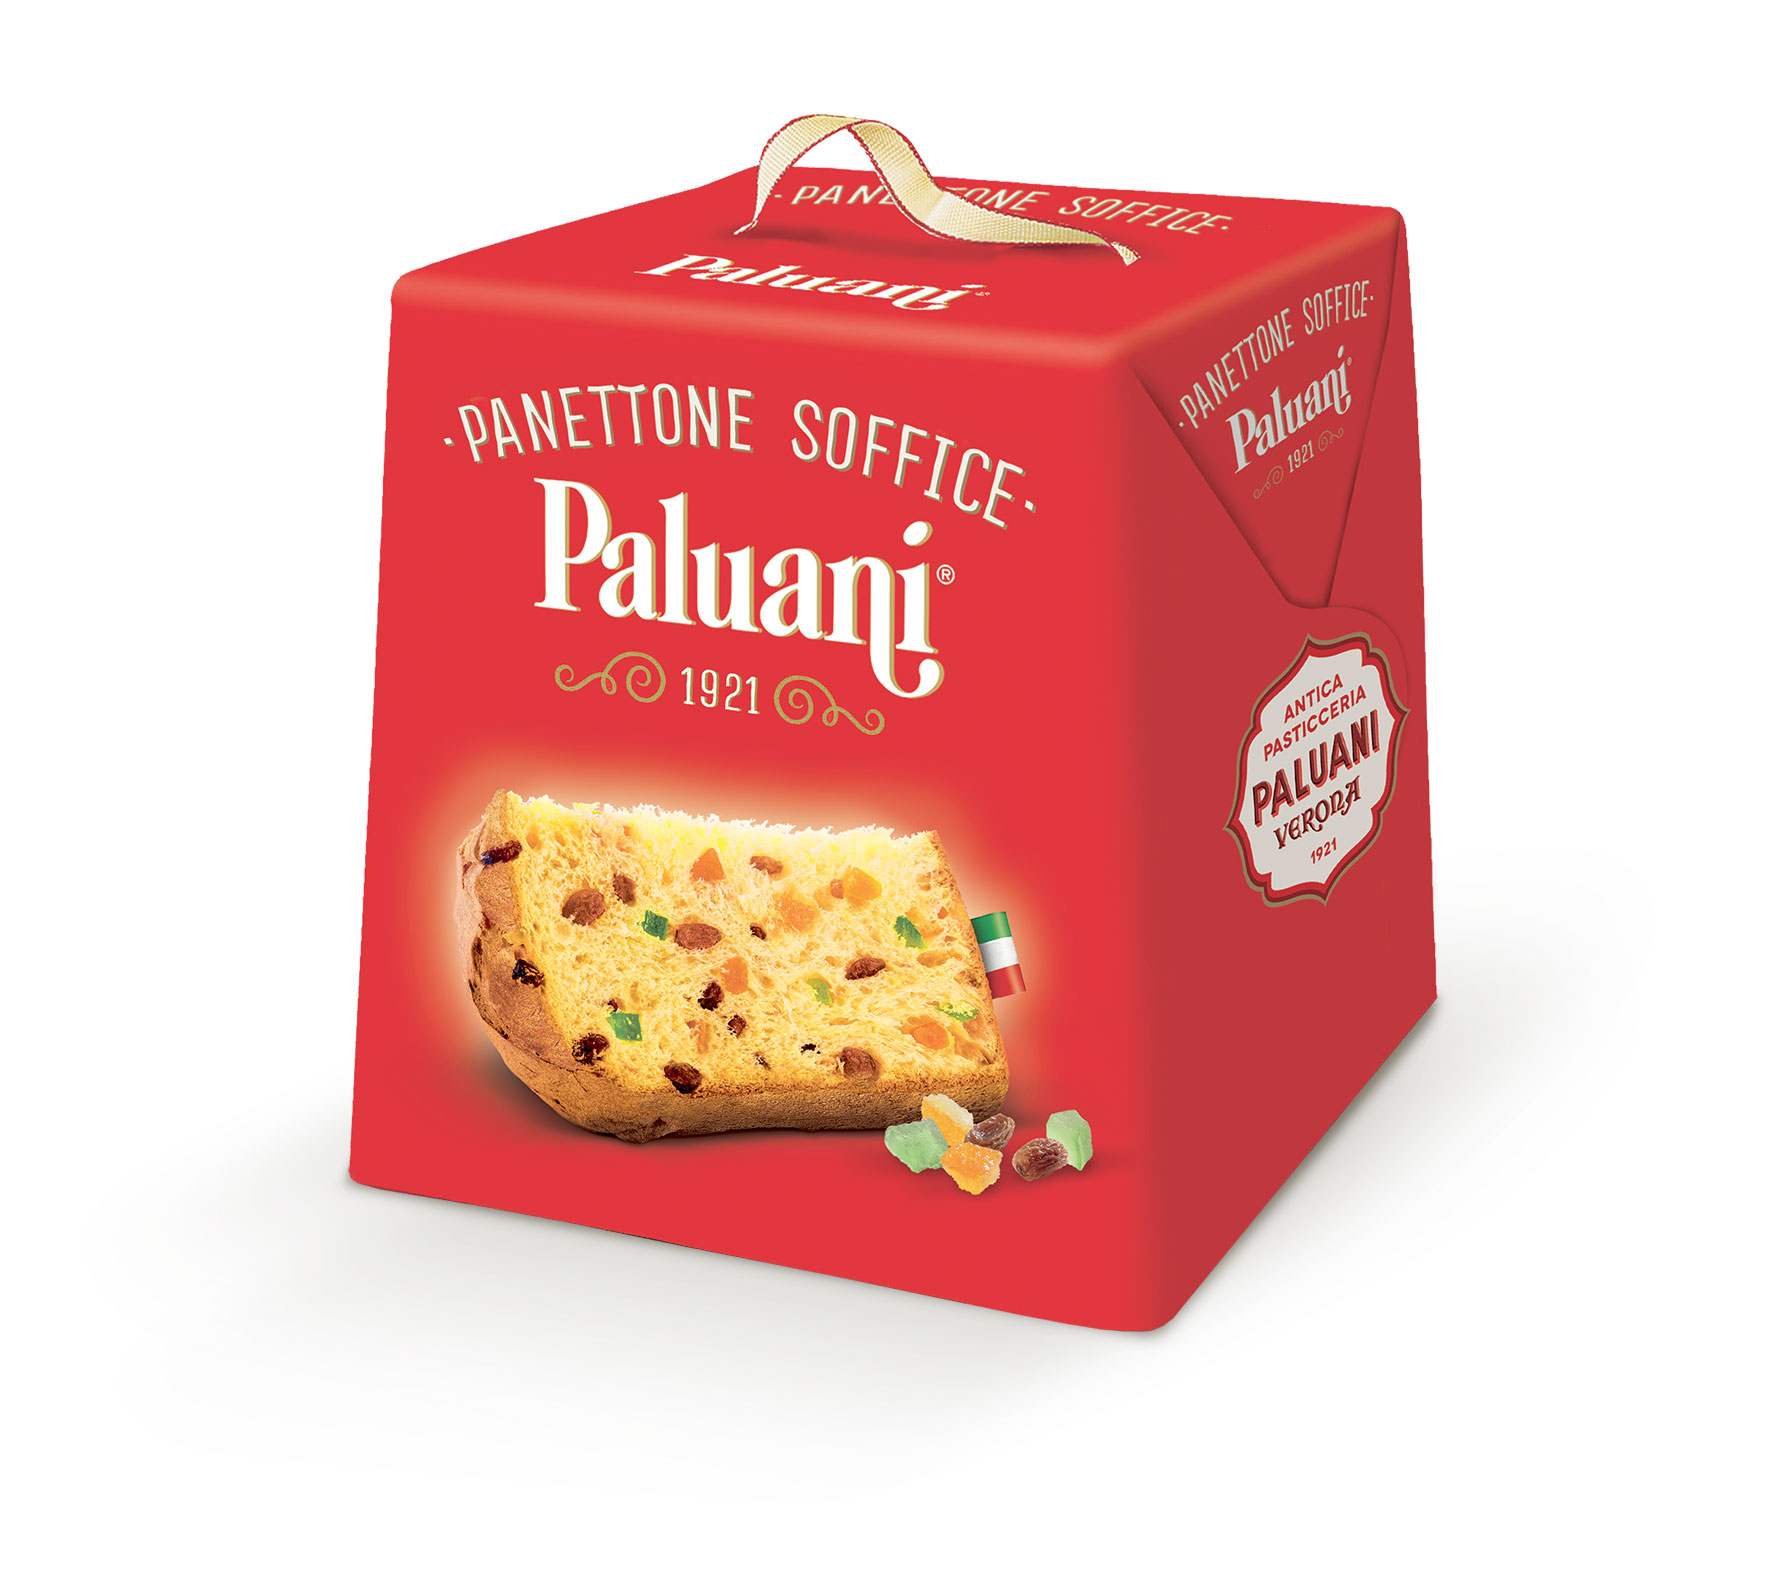 Panettone Soffice Paluani 100g - FORMICA